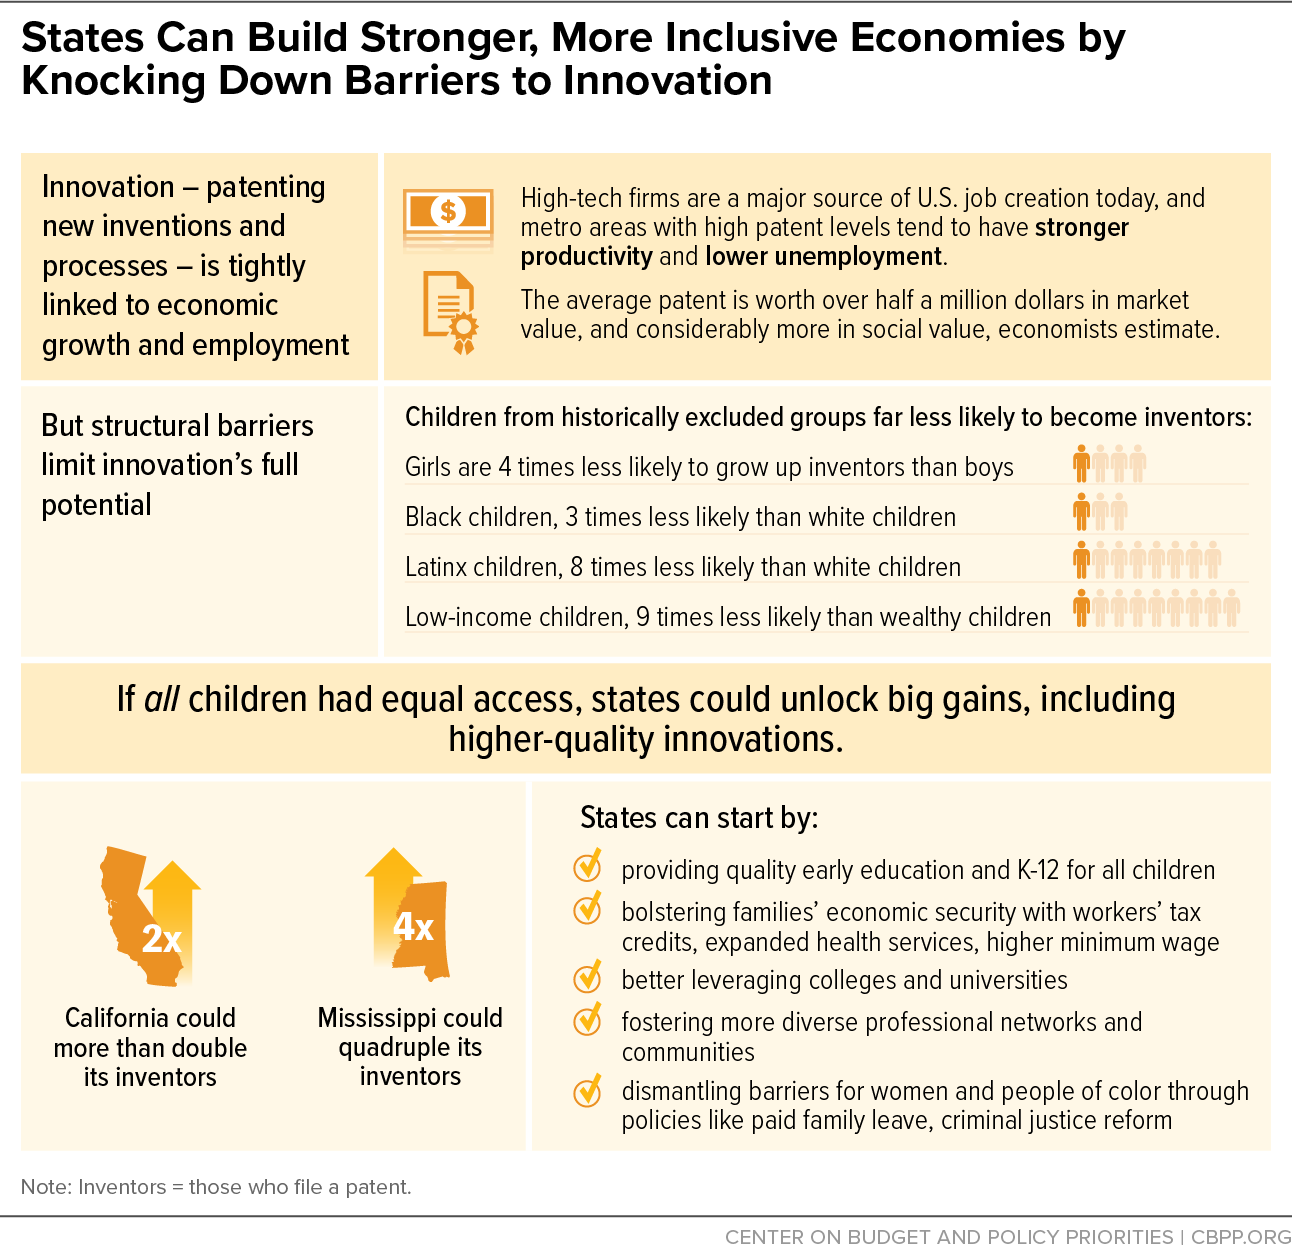 States Can Build Stronger, More Inclusive Economies by Knocking Down Barriers to Innovation